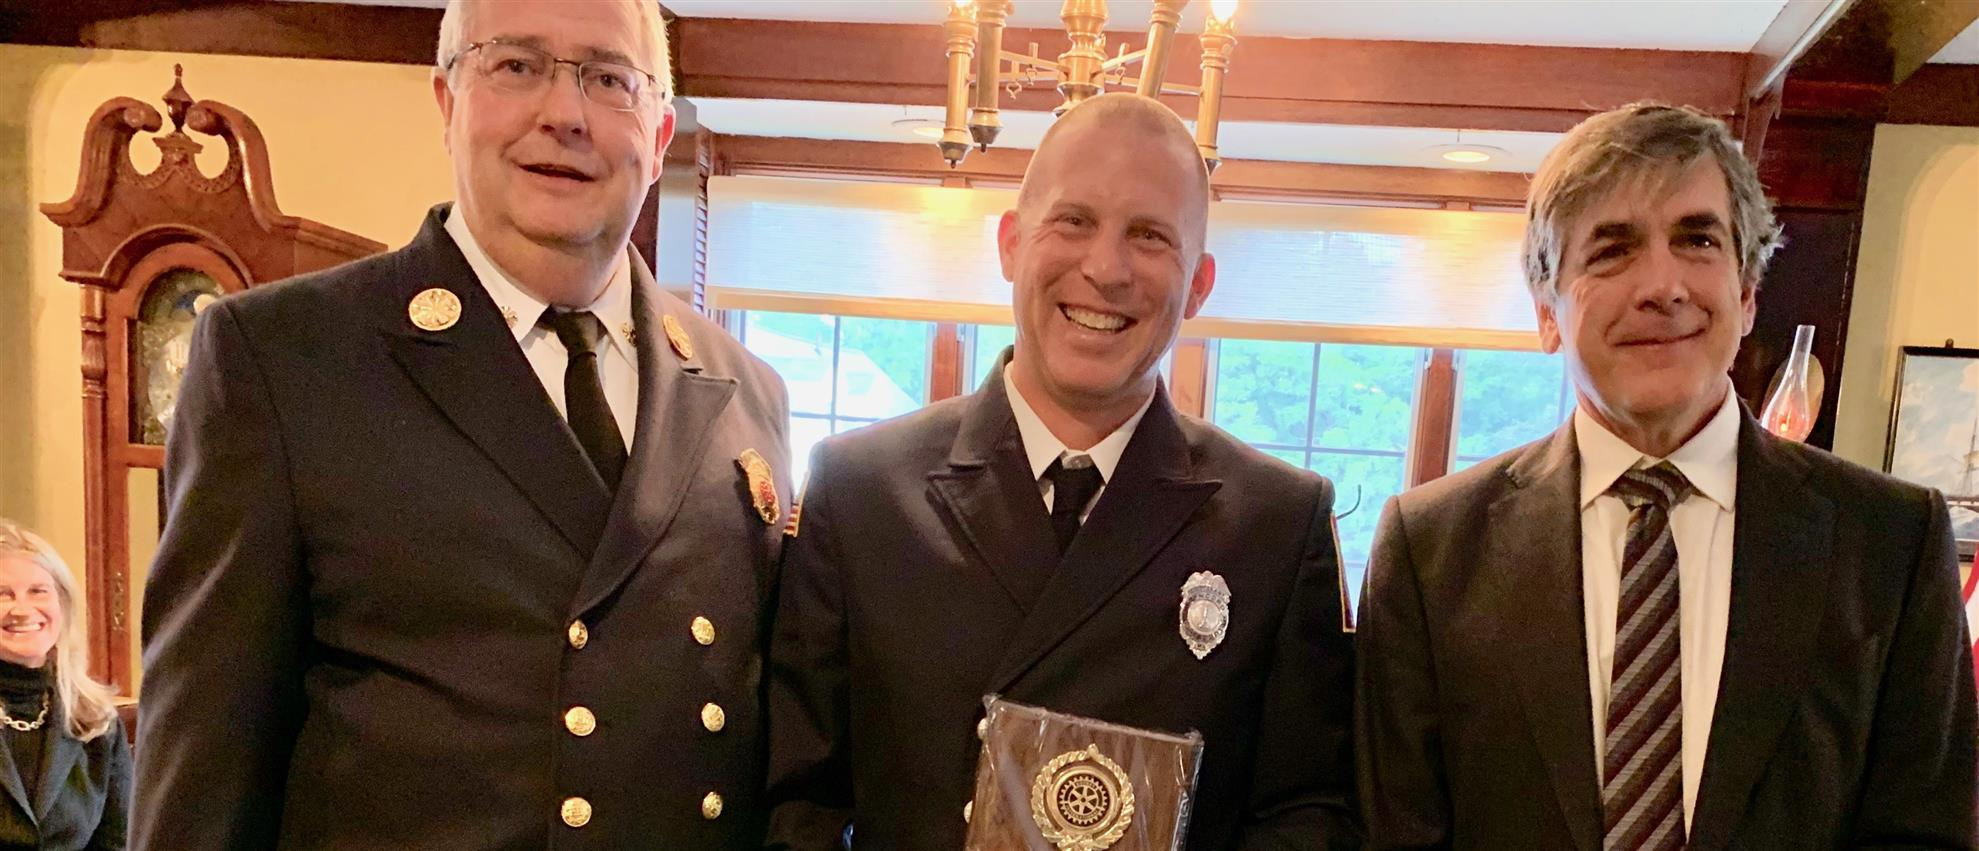 Fire Chief Tom Judge gives Al Filipov Award to Billy Nelson